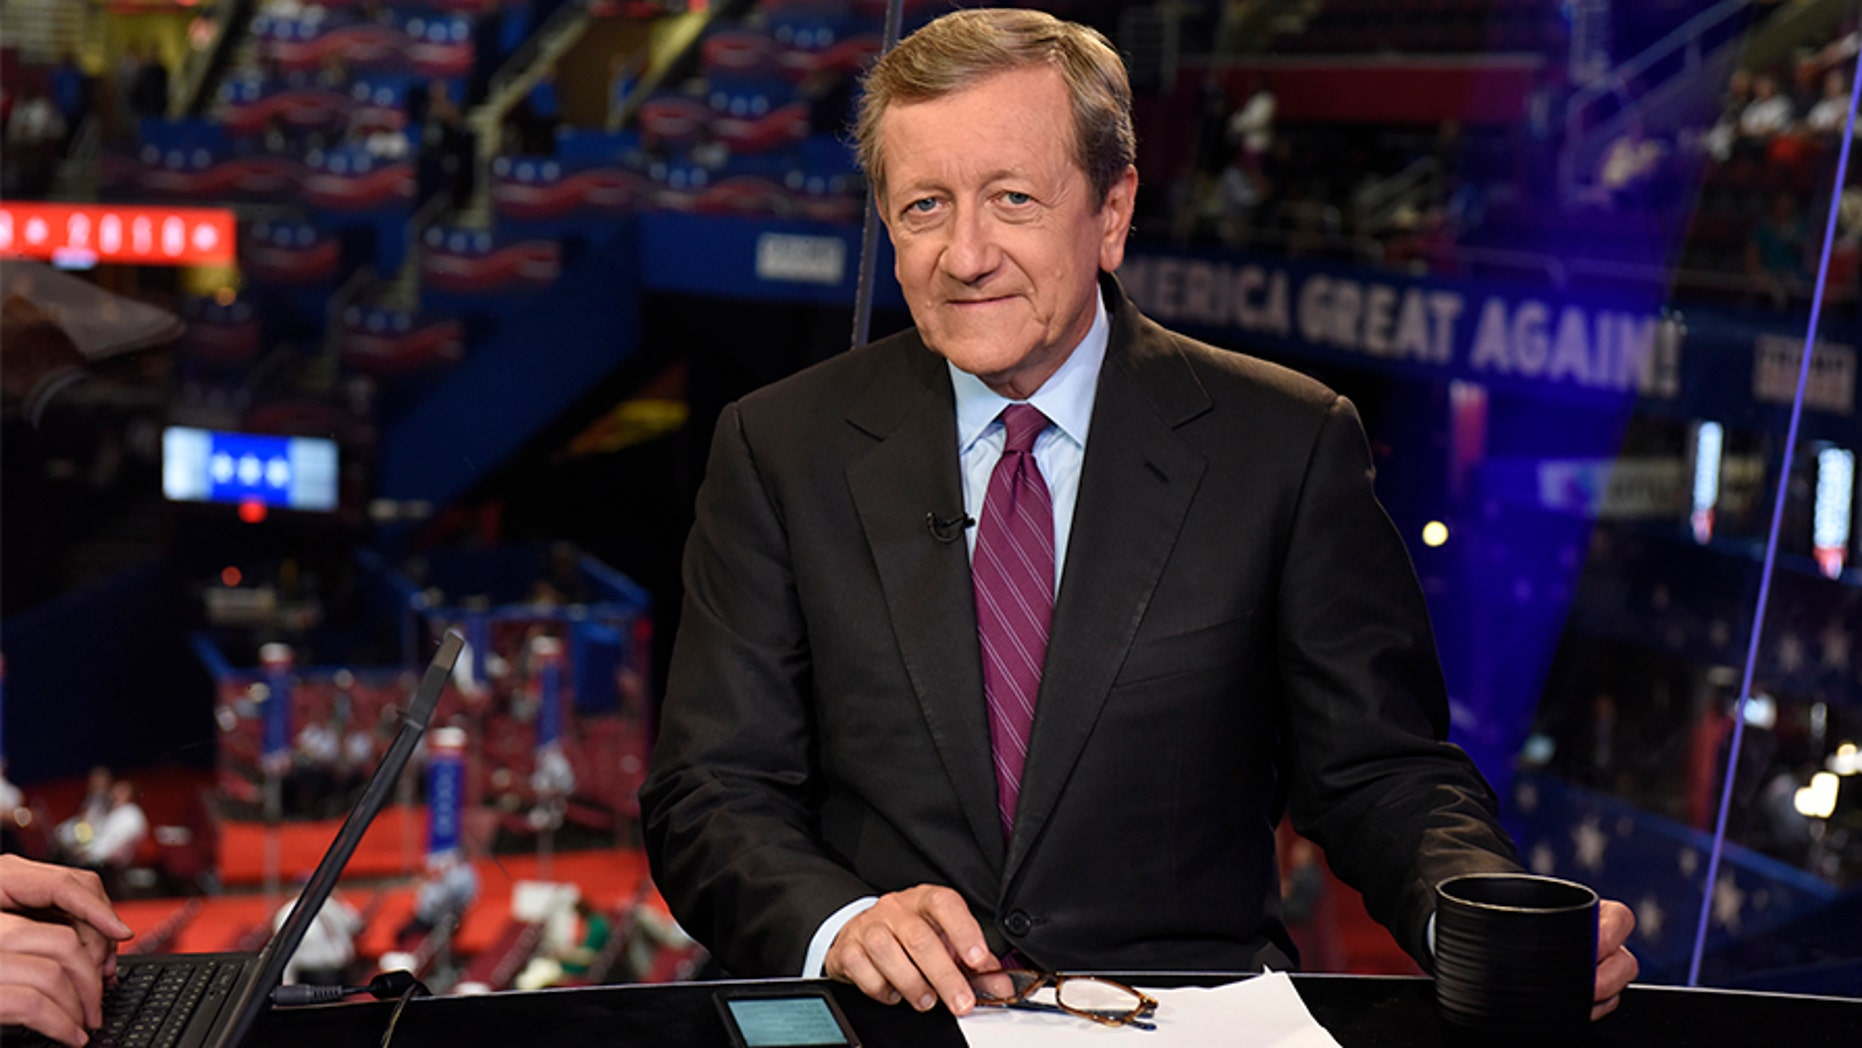 ABC demotes Brian Ross after bungled report on Trump, Russia | Fox News